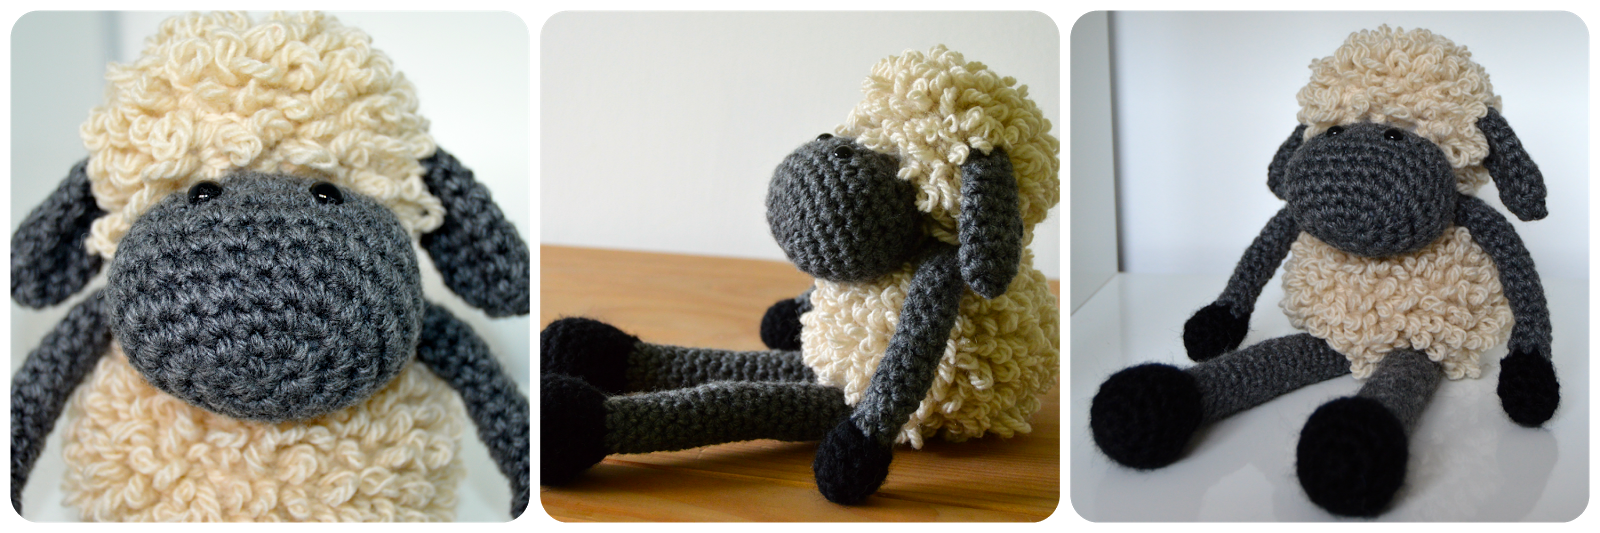 Amigurumi Witches Oyuncaklar - Baby Goods/Kids Goods | Facebook ... | 533x1600